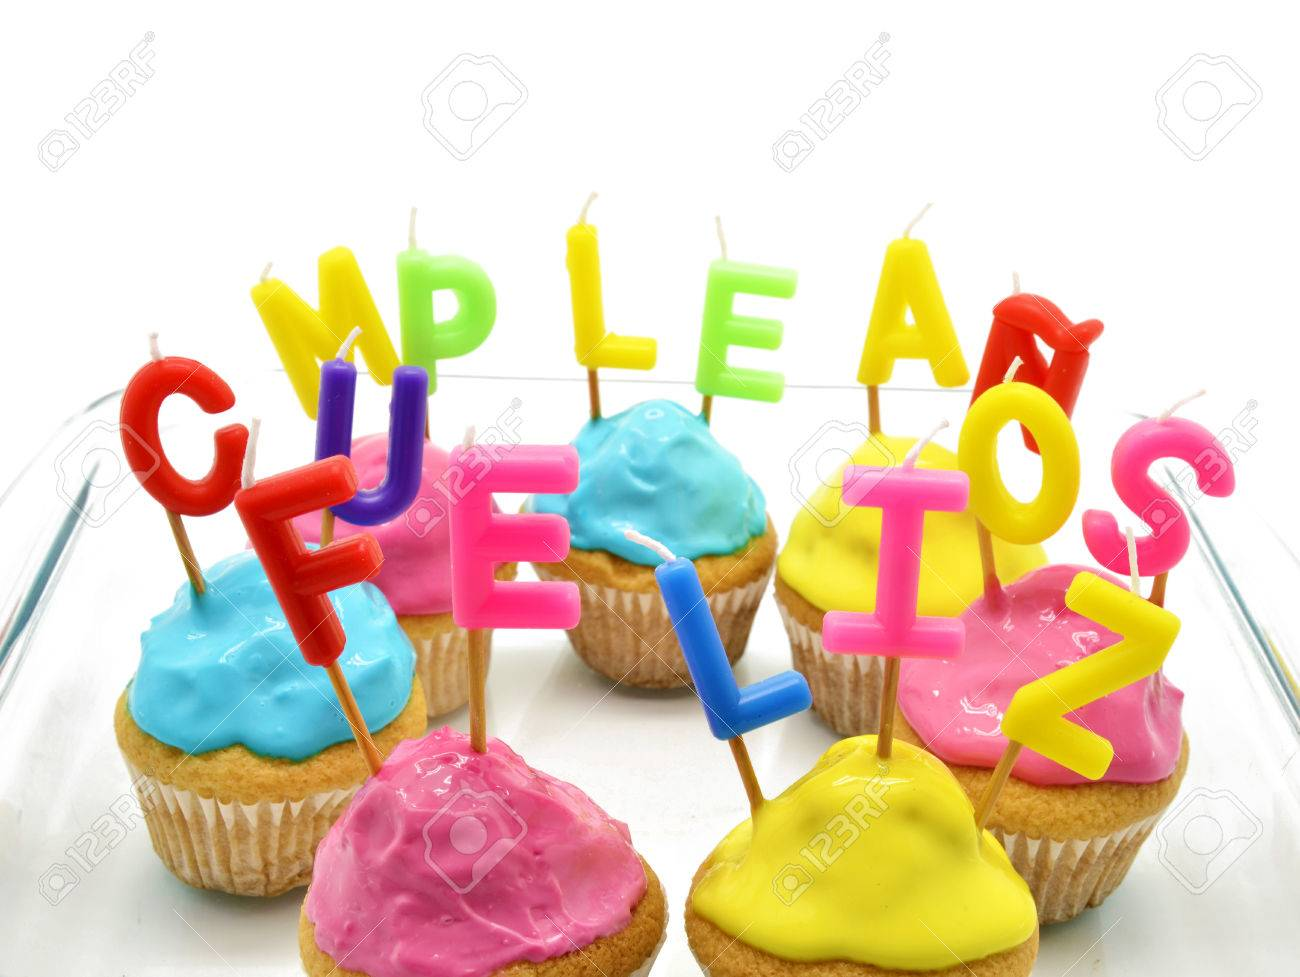 Birthday Cupcakes With Candles Happy Birthday In Spanish Stock Photo